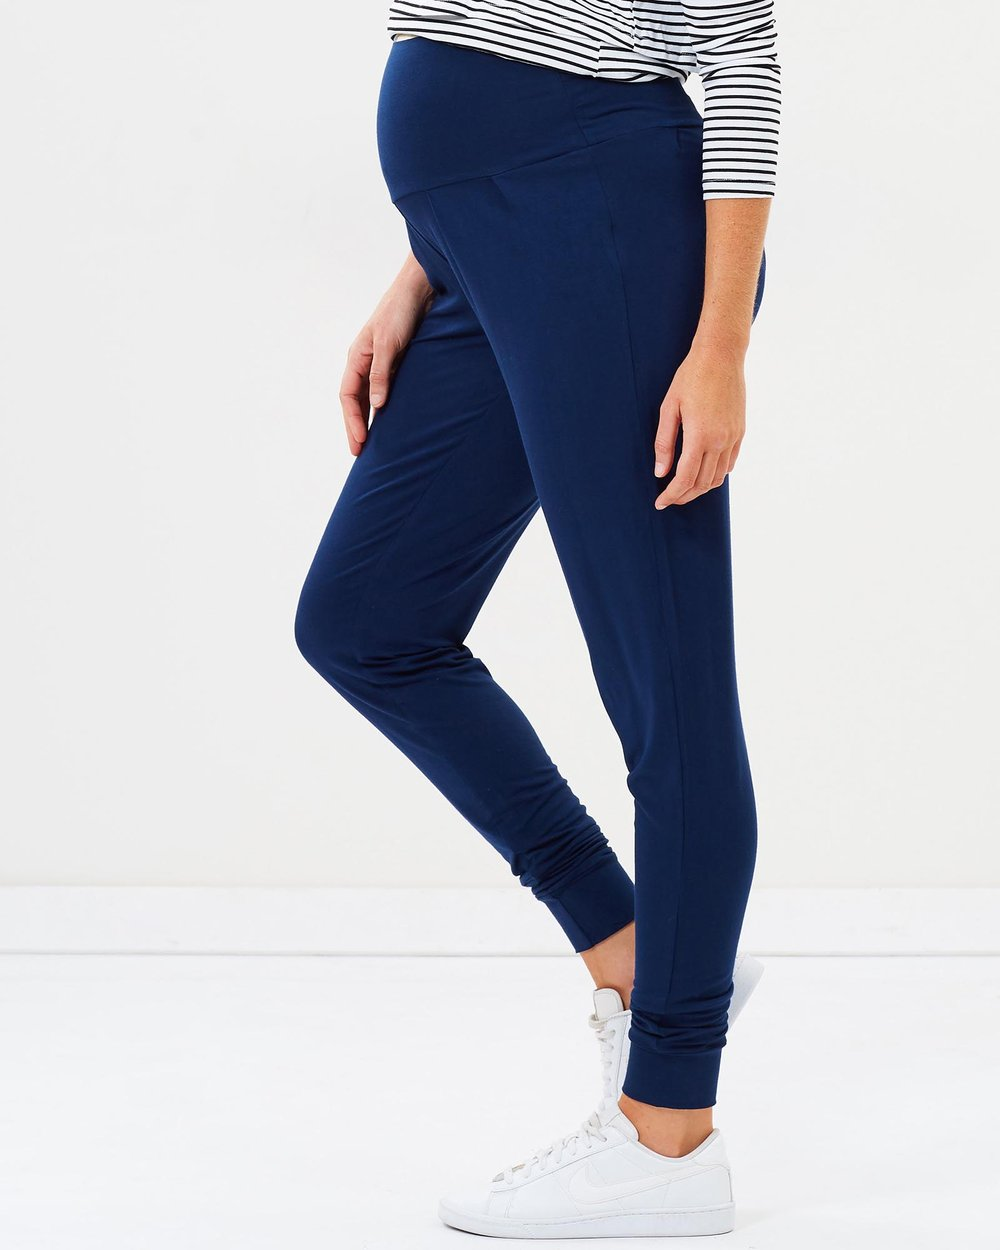 c0ea54c8e0ab7 Maternity Bamboo Casual Pants by Angel Maternity Online | THE ICONIC |  Australia